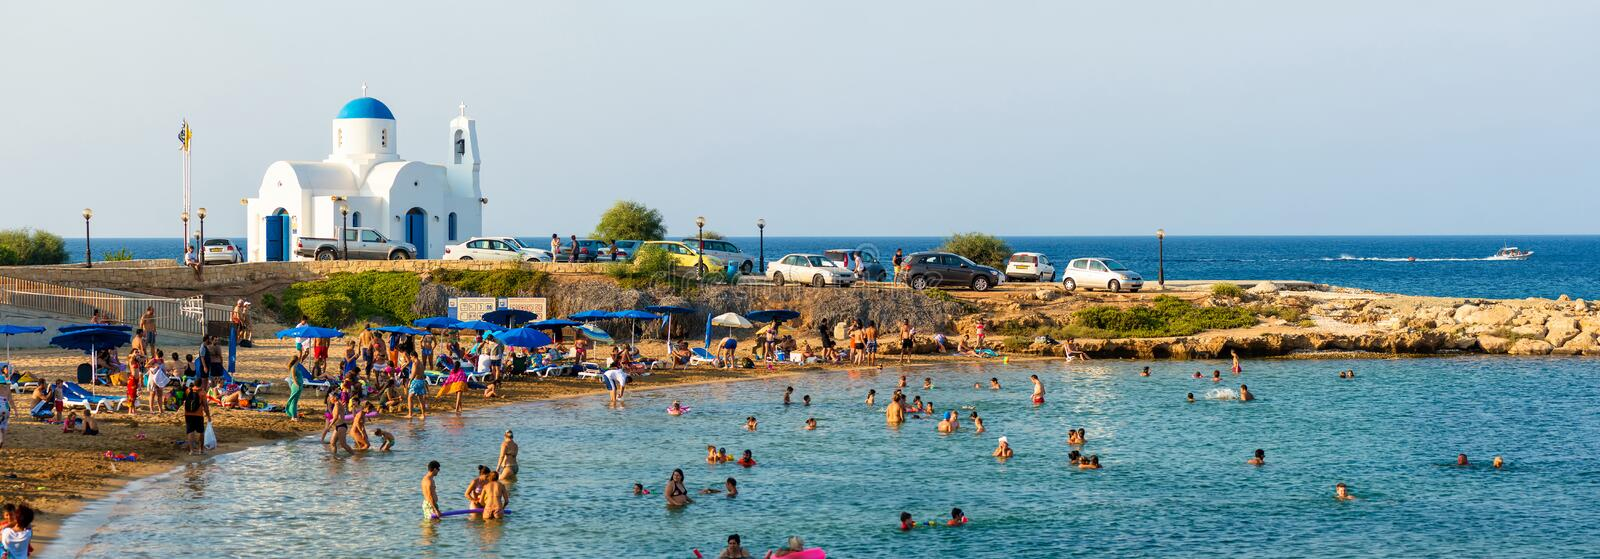 PARALIMNI, CYPRUS - 17 AUGUST 2014: Crowded beach with tourists stock image